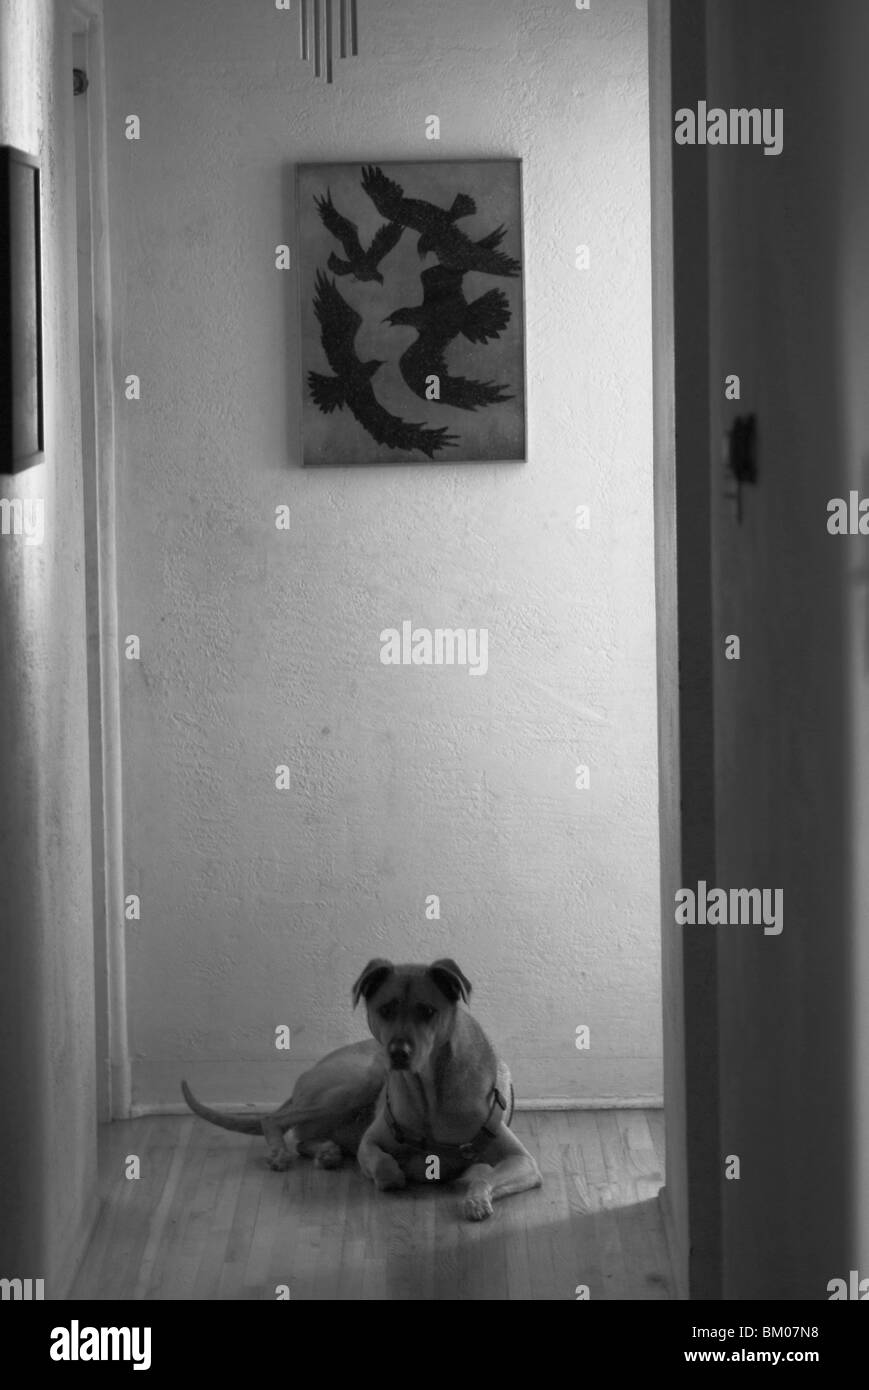 a dog sits at the end of a hallway with a painting of crows above him in a home in suburban albuquerque, new mexico, - Stock Image